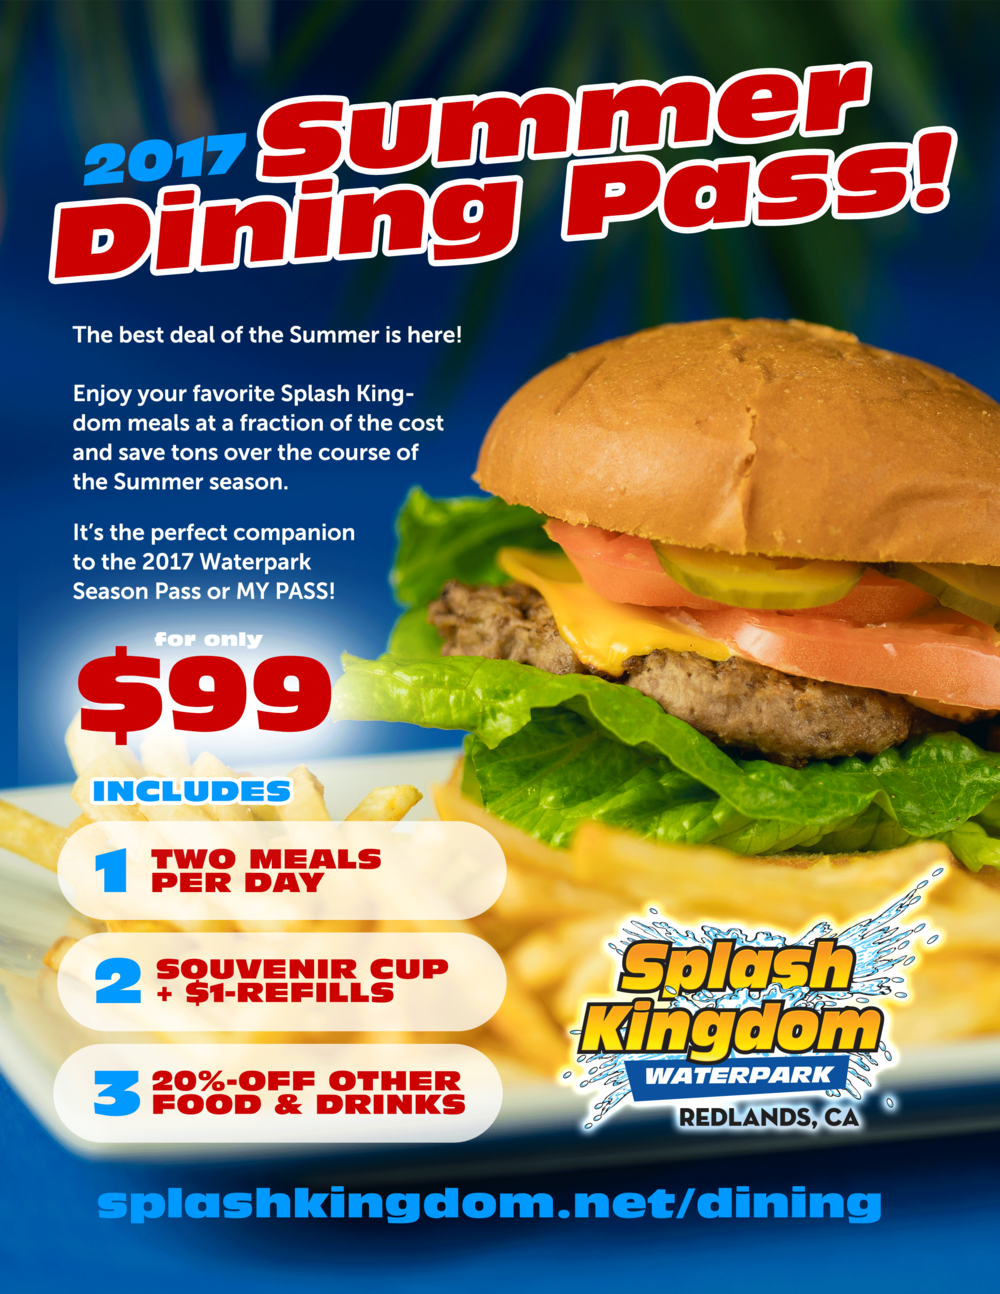 2017-splash-kingdom-waterpark-summer-dining-pass